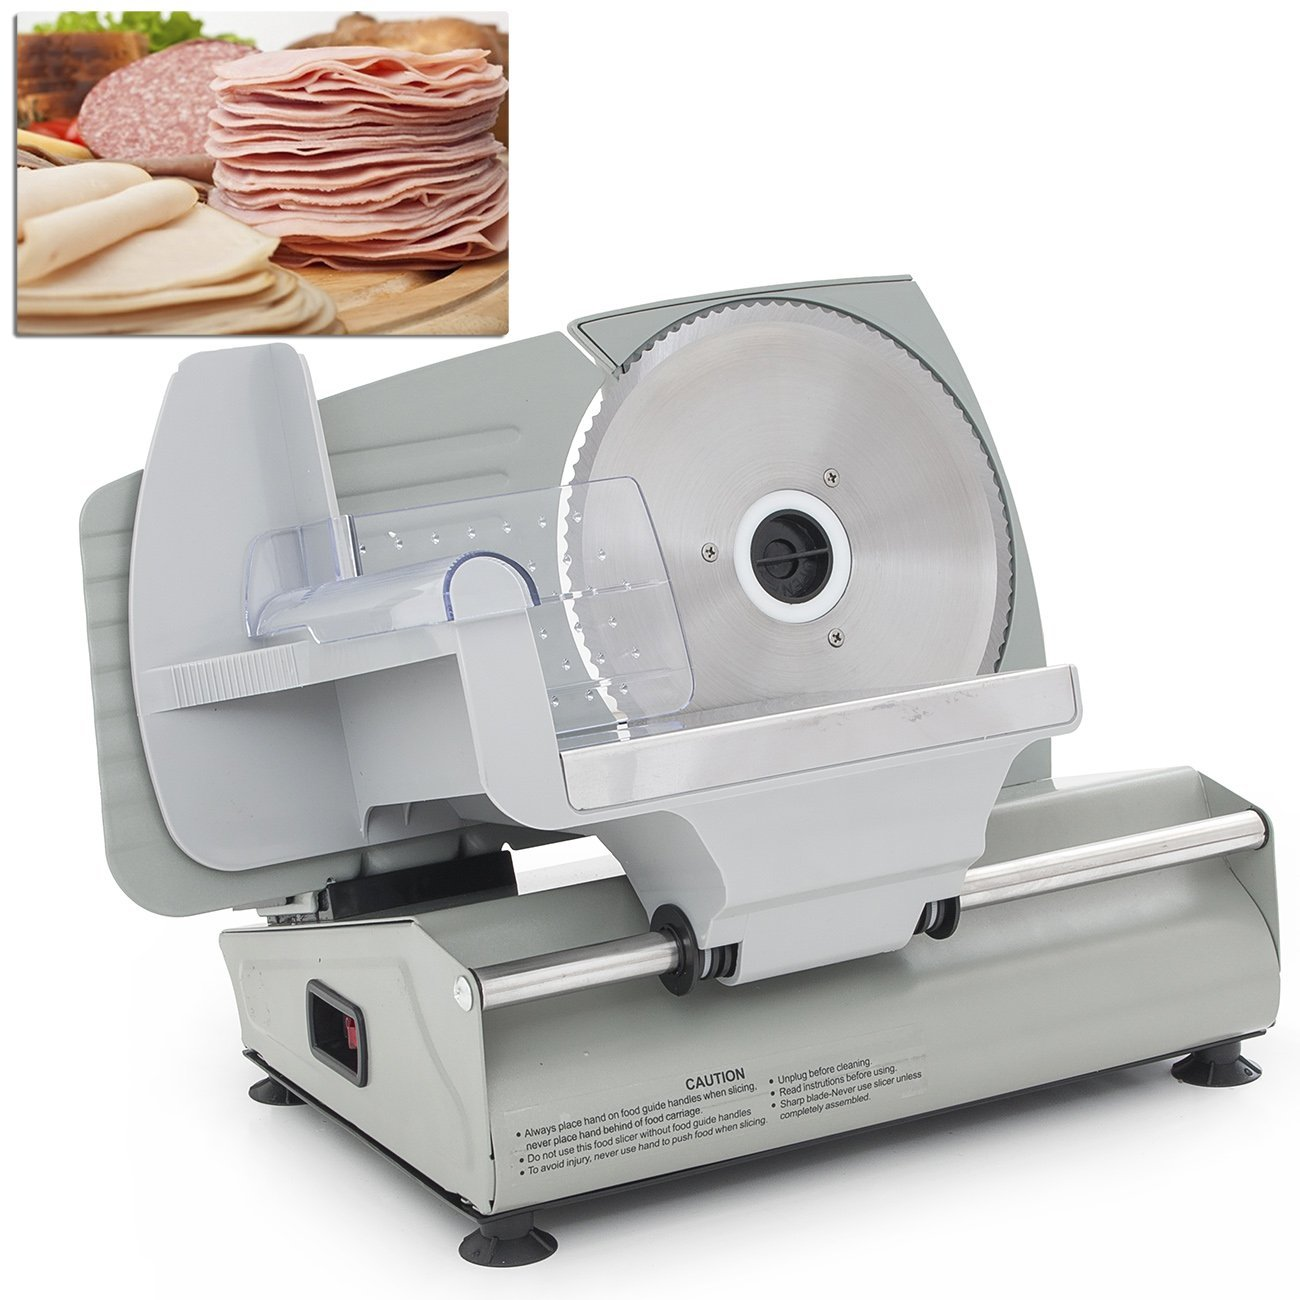 Choosing the Best Commercial Meat Slicer